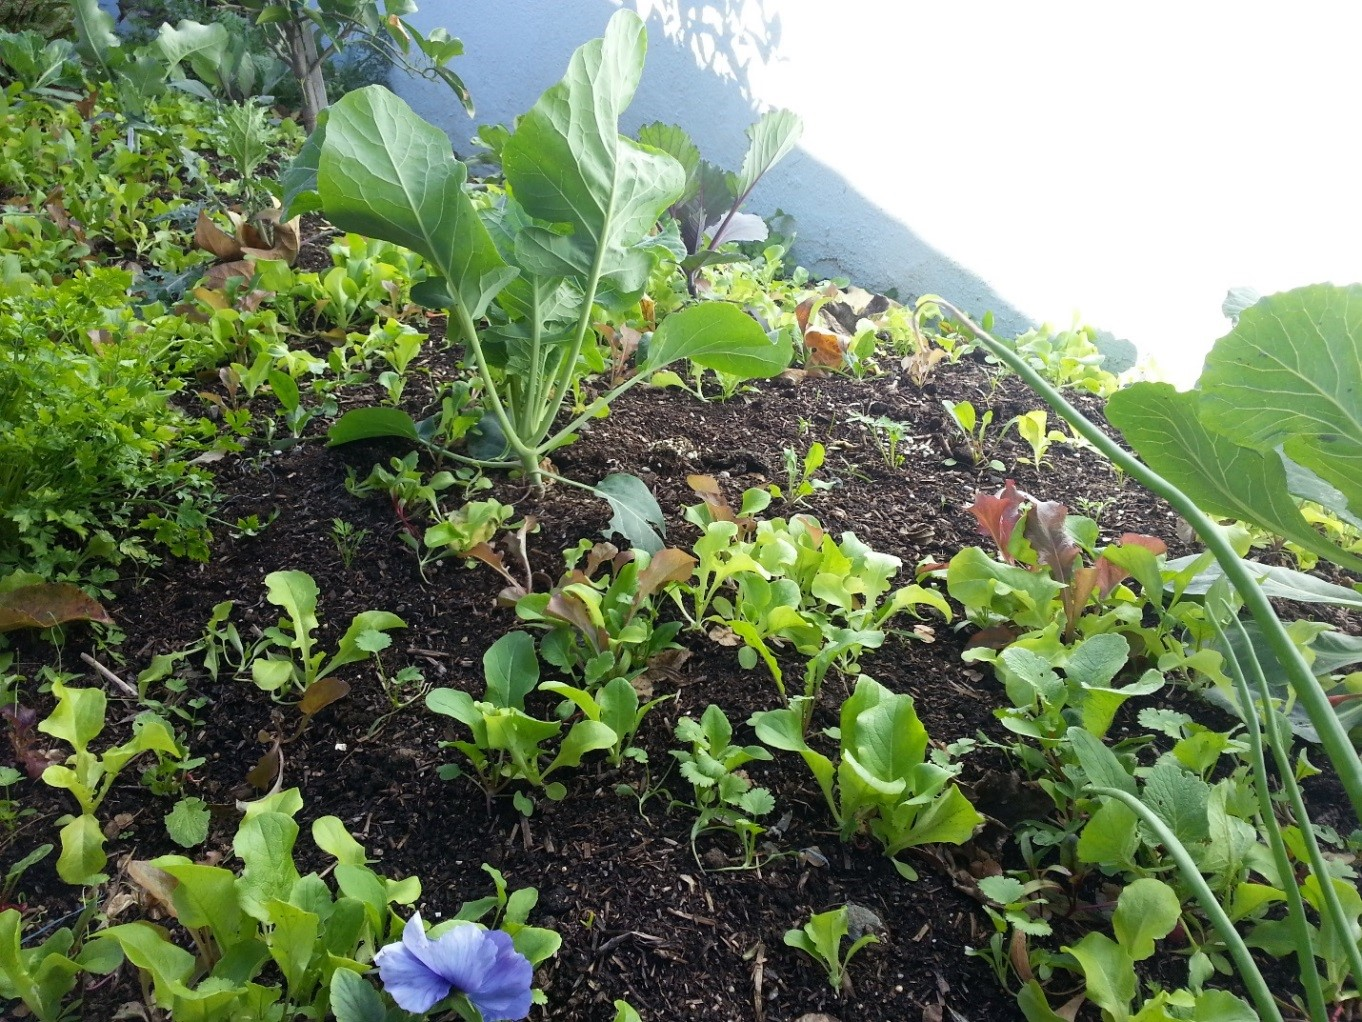 After you have planted your veggie starts, broadcast the seed mix over the beds and water in well. You will see your seed mix come up over the next 2-3 weeks and grow and grow…